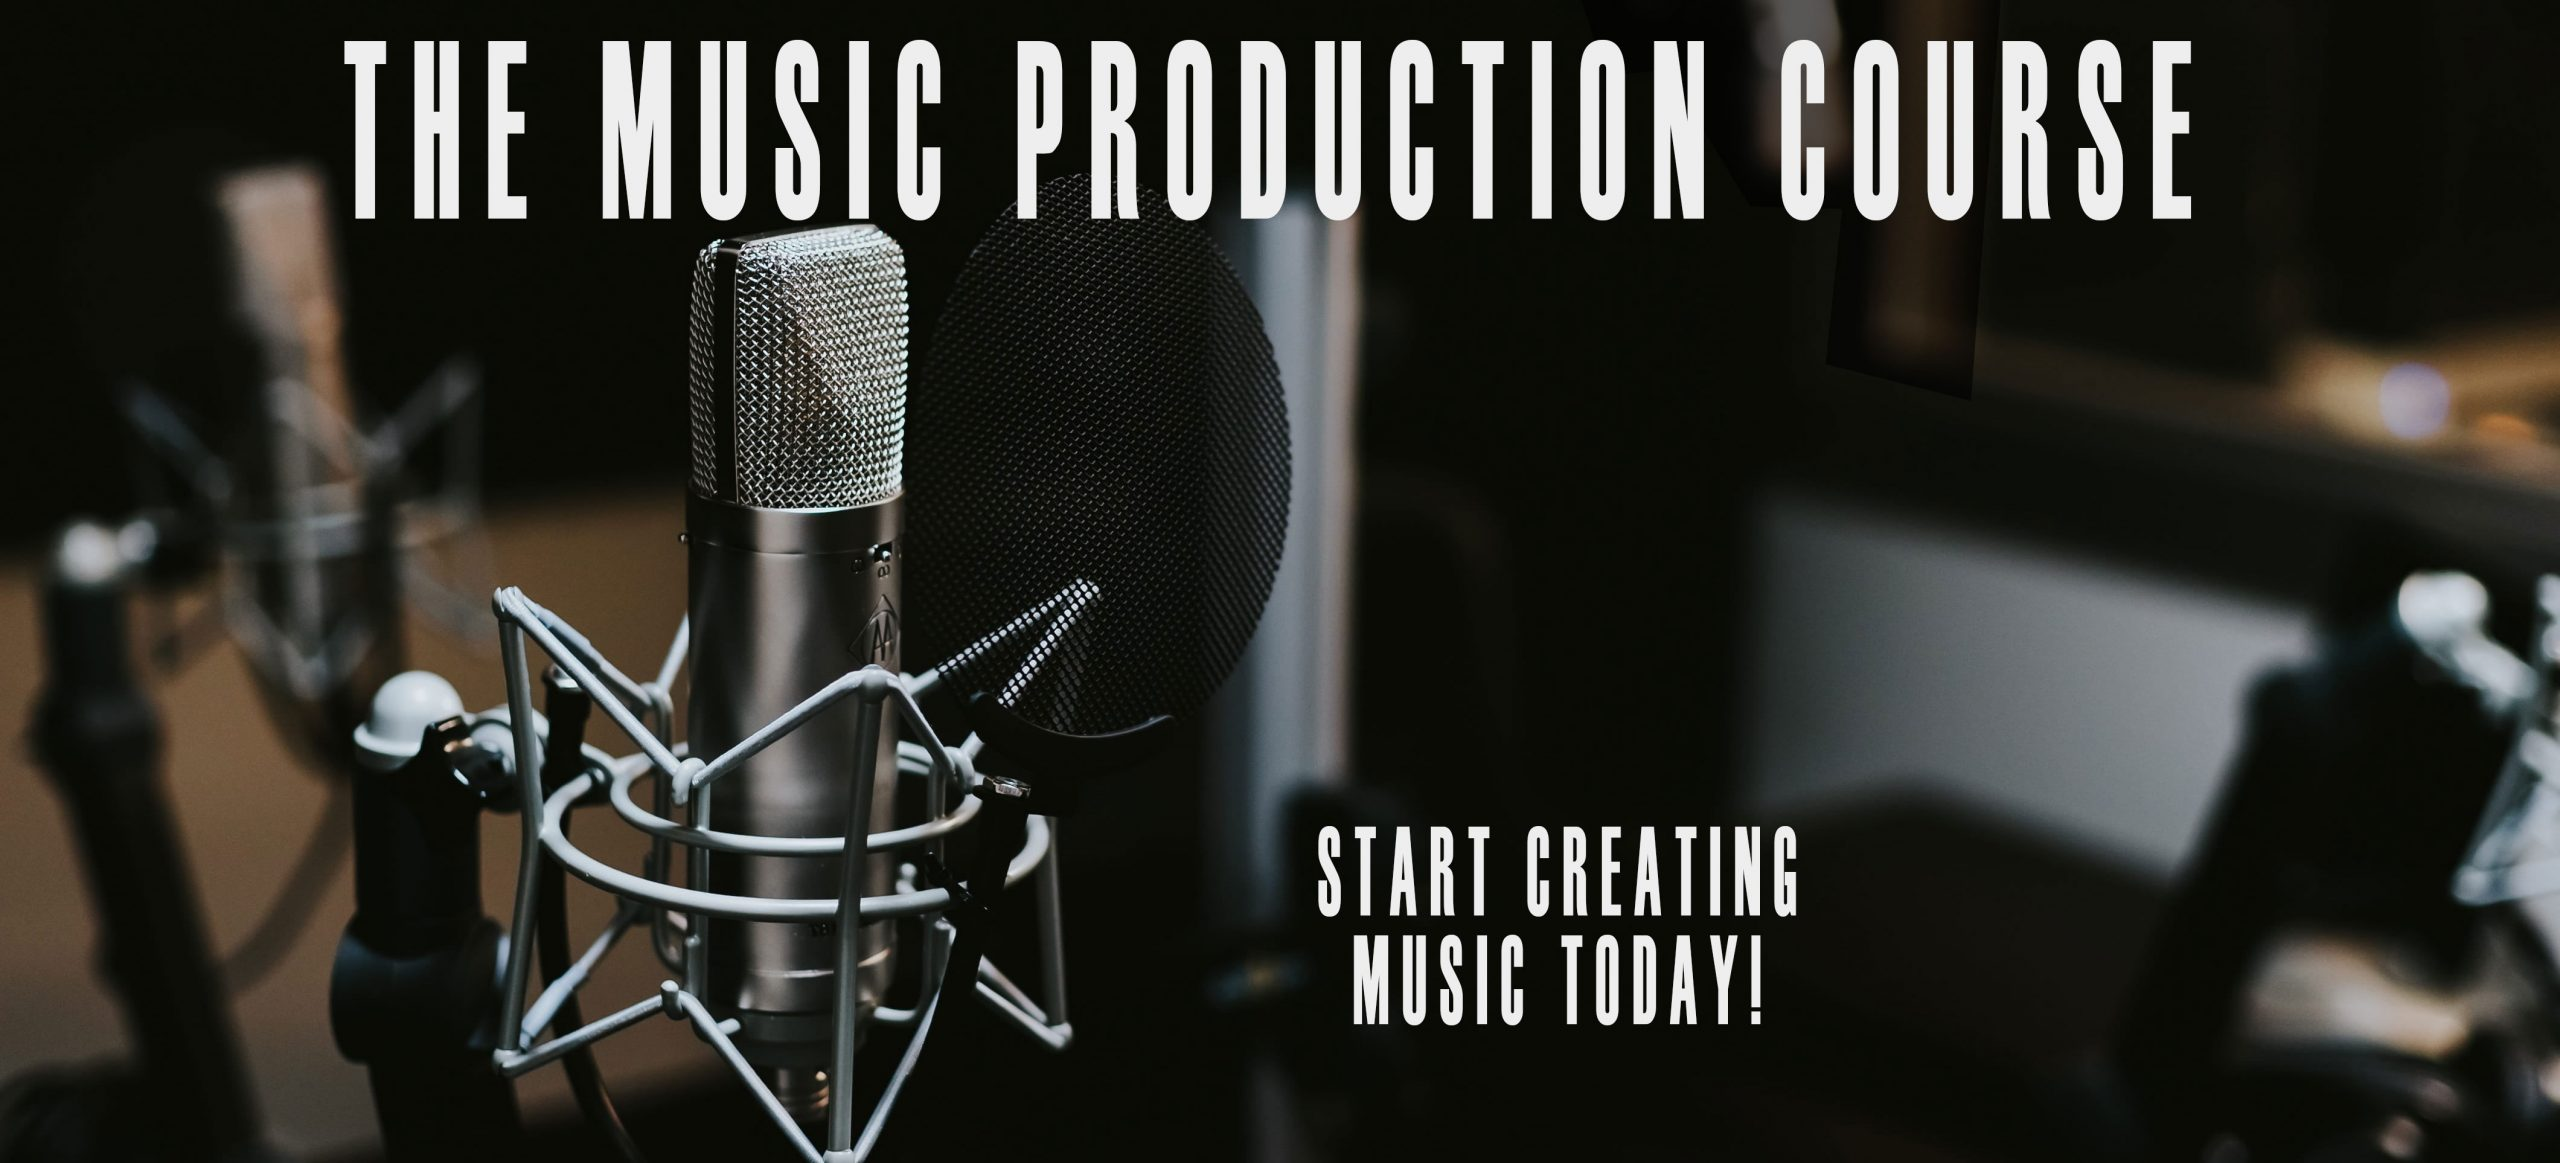 The Music Production Course by Liz Cirelli